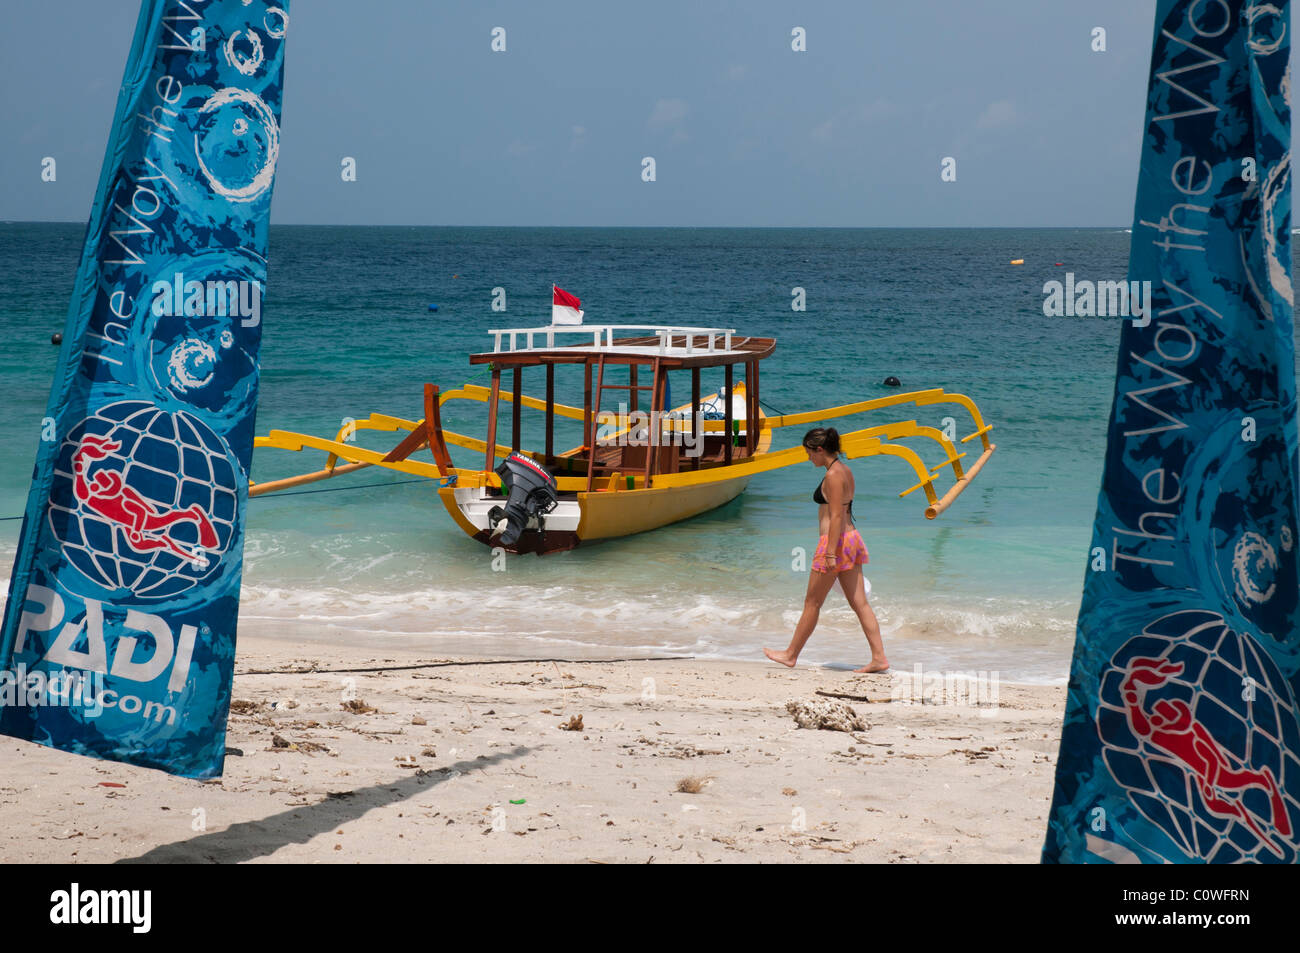 Glass bottomed dive boat on the beach at Gili Trawangan a small island off Lombok, Indonesia Stock Photo